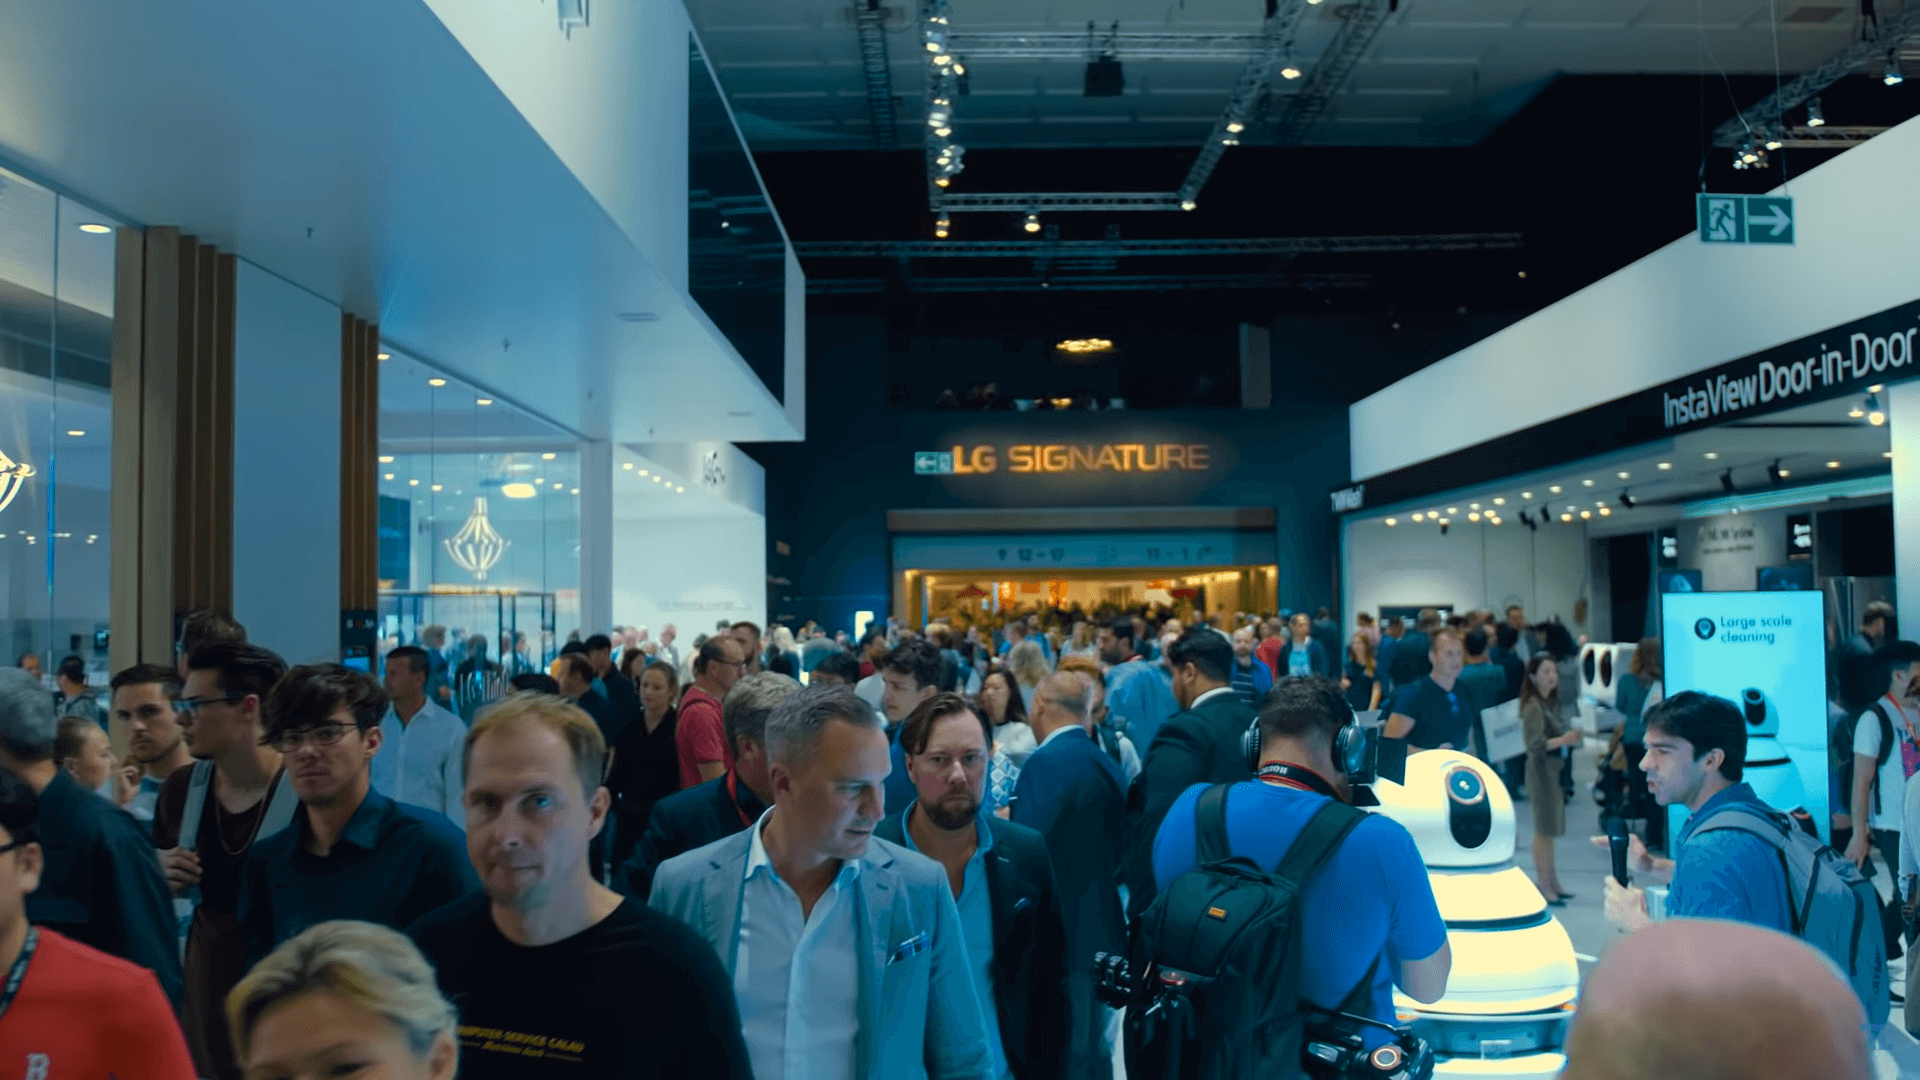 Samsung is not coming to IFA 2020, but confirms own digital event